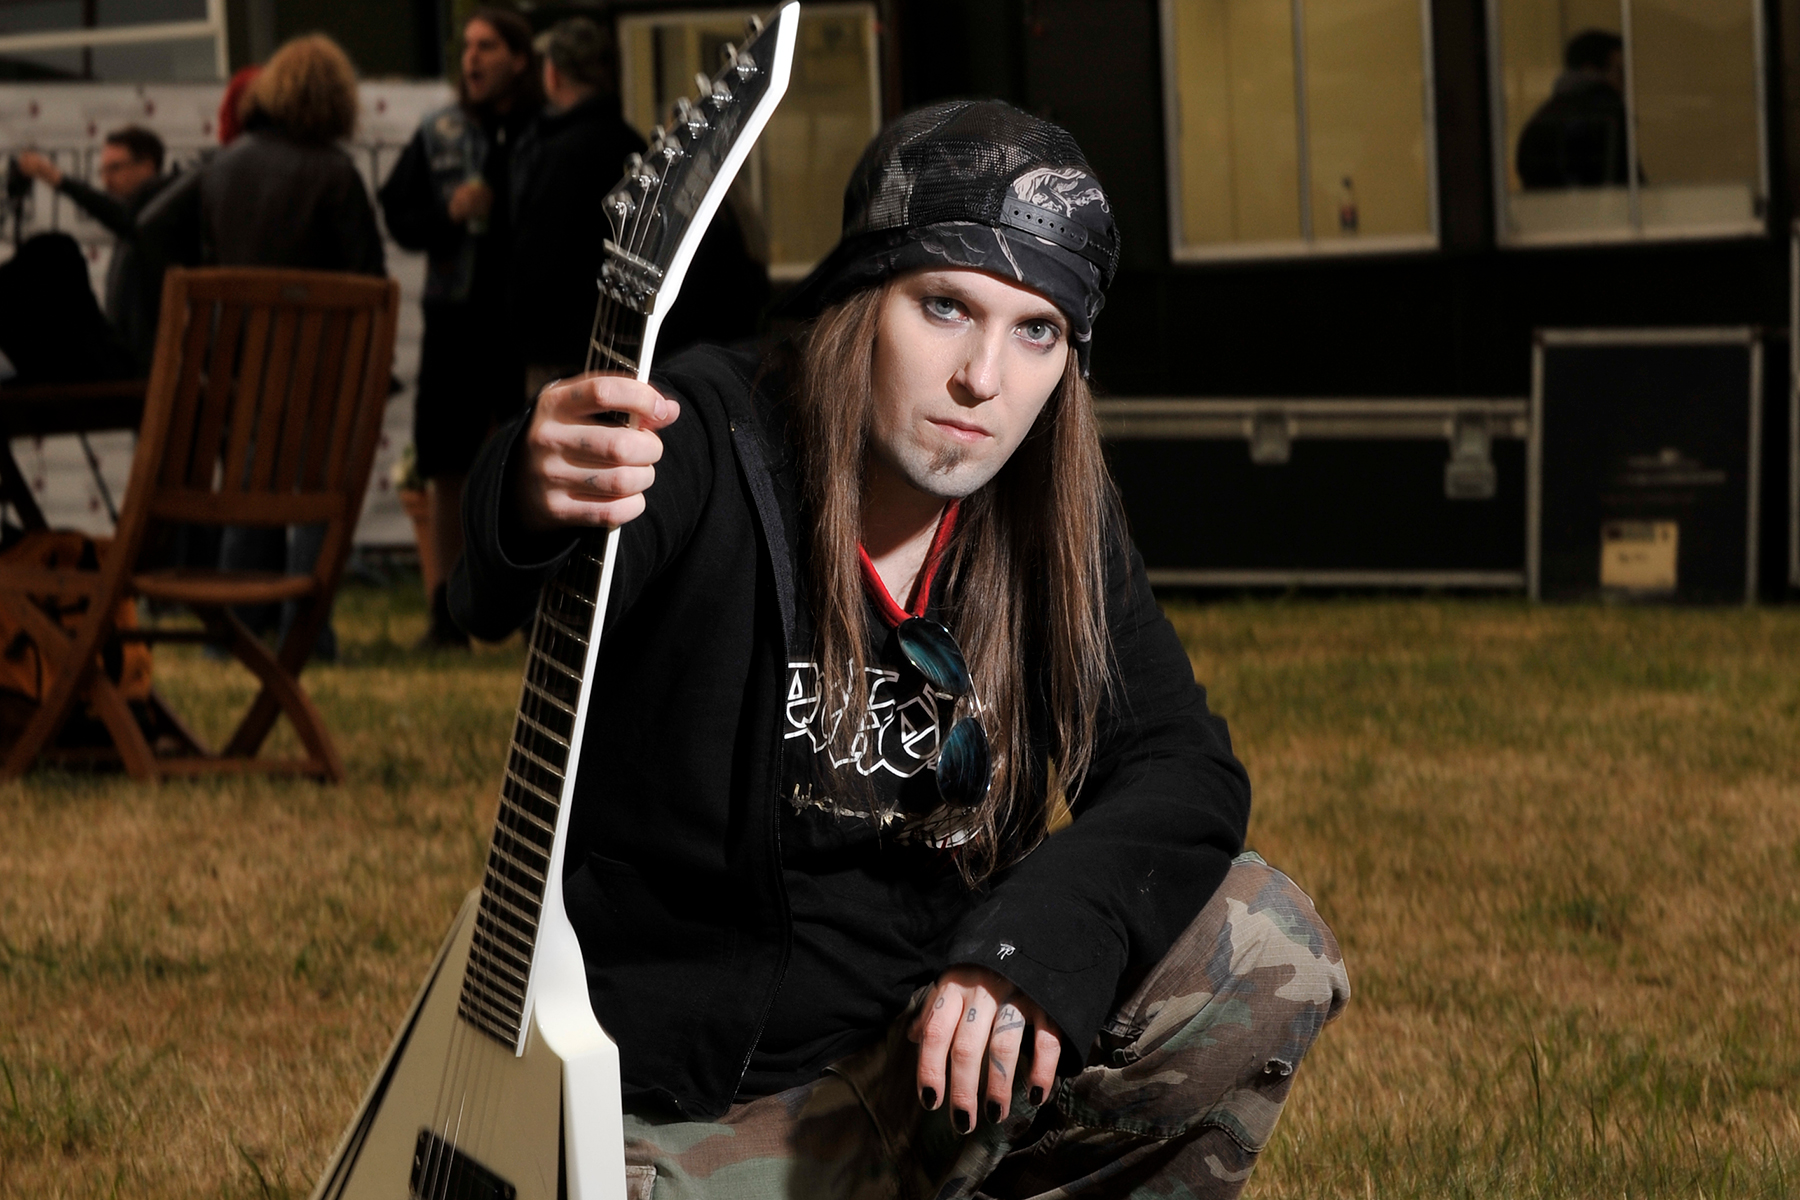 Alexi Laiho, Frontman for Finnis